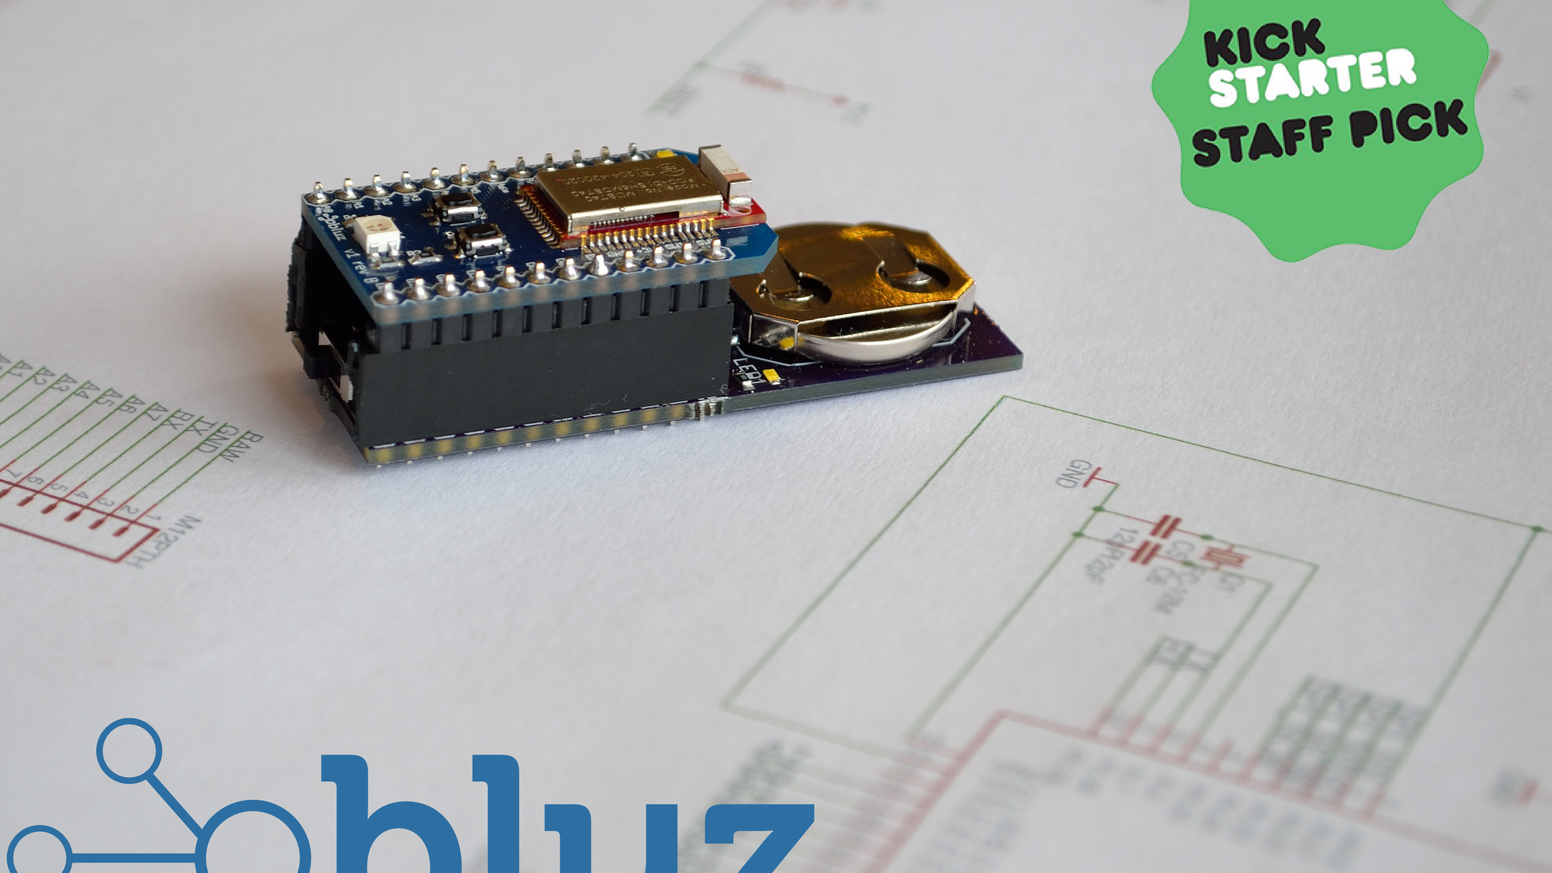 Bluz A Cloud Connected Bluetooth Le Development Kit By Ben Harris Low Cost Arm Microcontrollers Dev Build Devices For The Internet Of Things With Rest Api And Web Ide